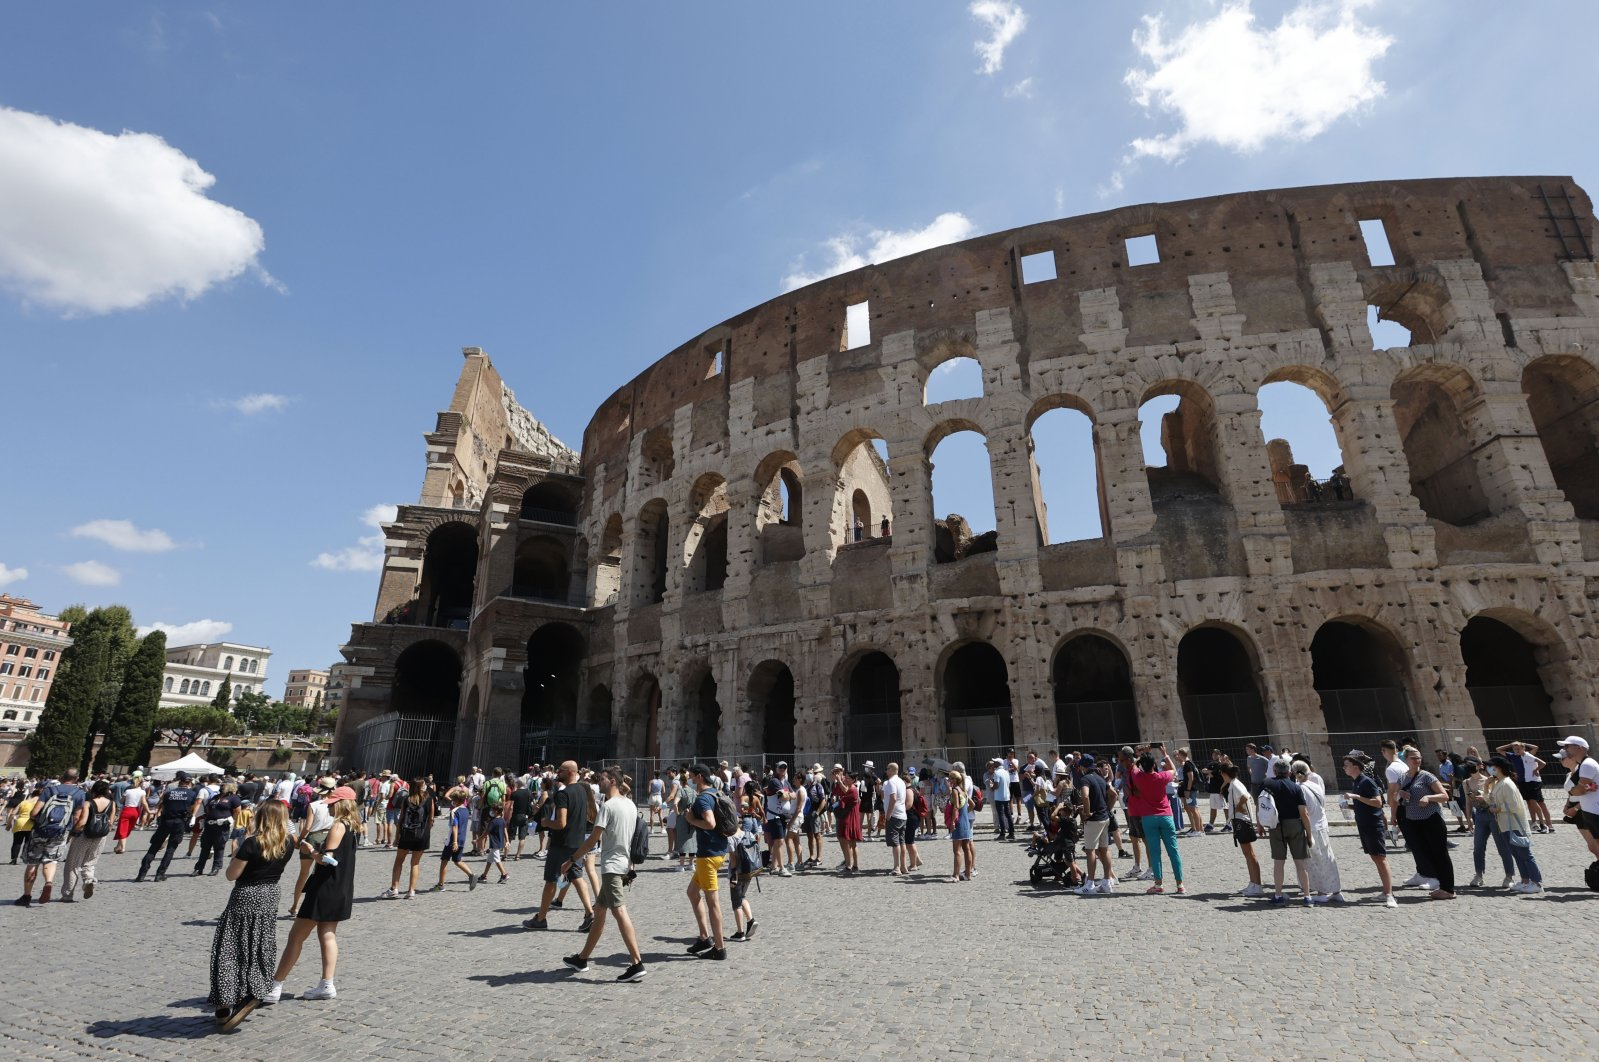 Tourists wait in a queue to enter the Colosseum in Rome, Italy, Aug. 6, 2021. (AP Photo)